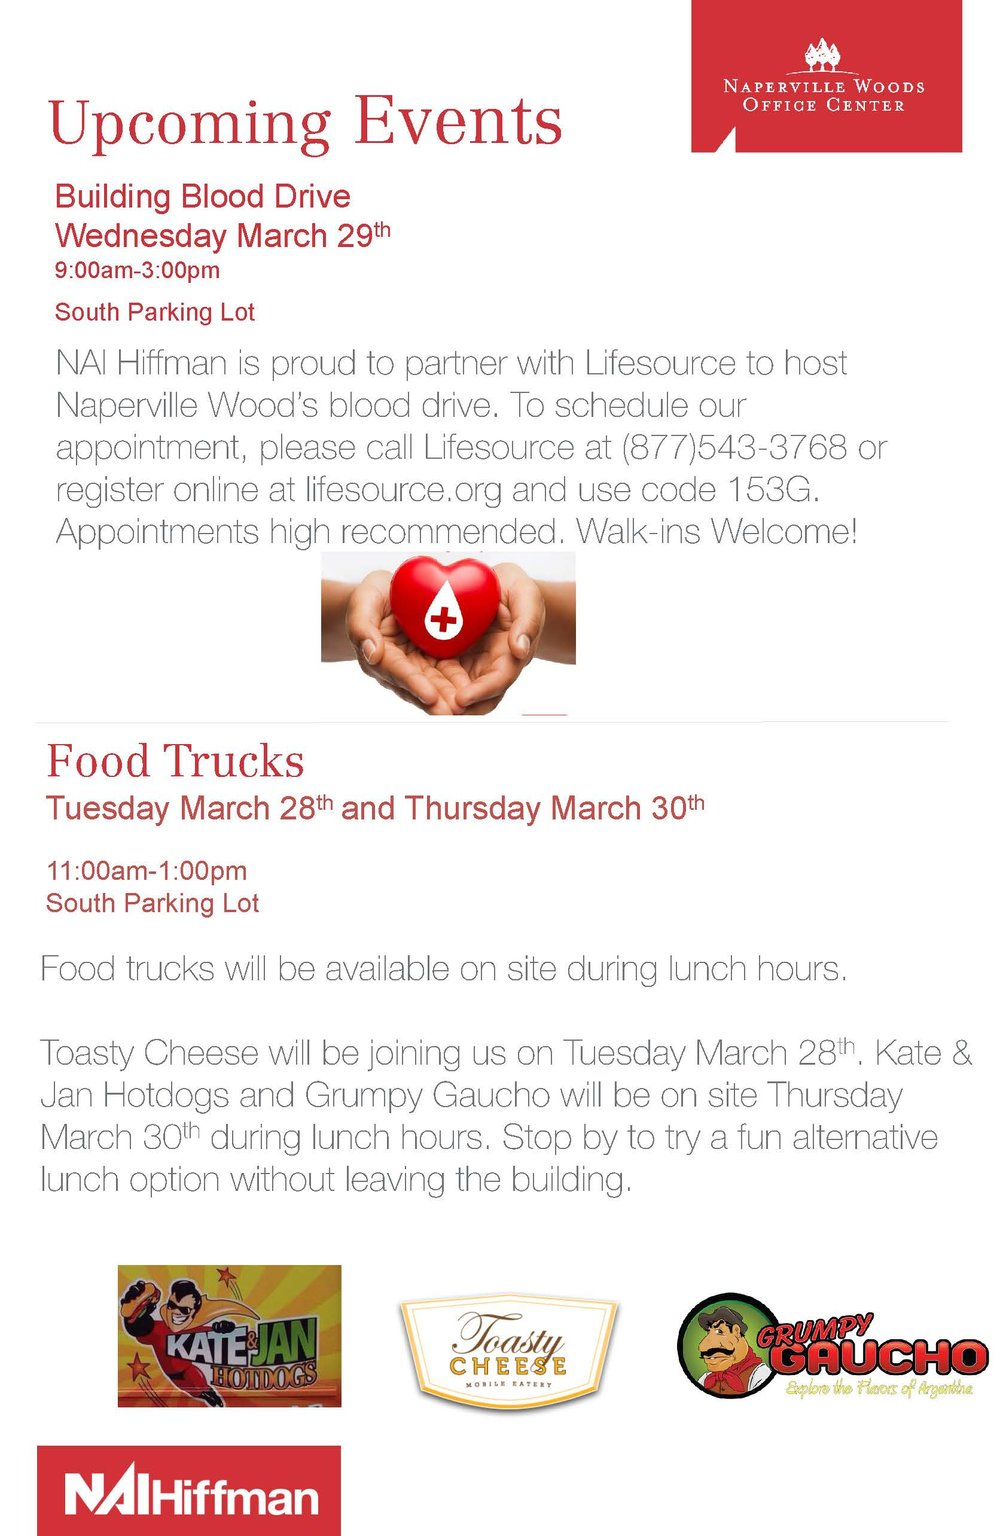 Naperville Woods -Blood drive and Food trucks memo.jpg